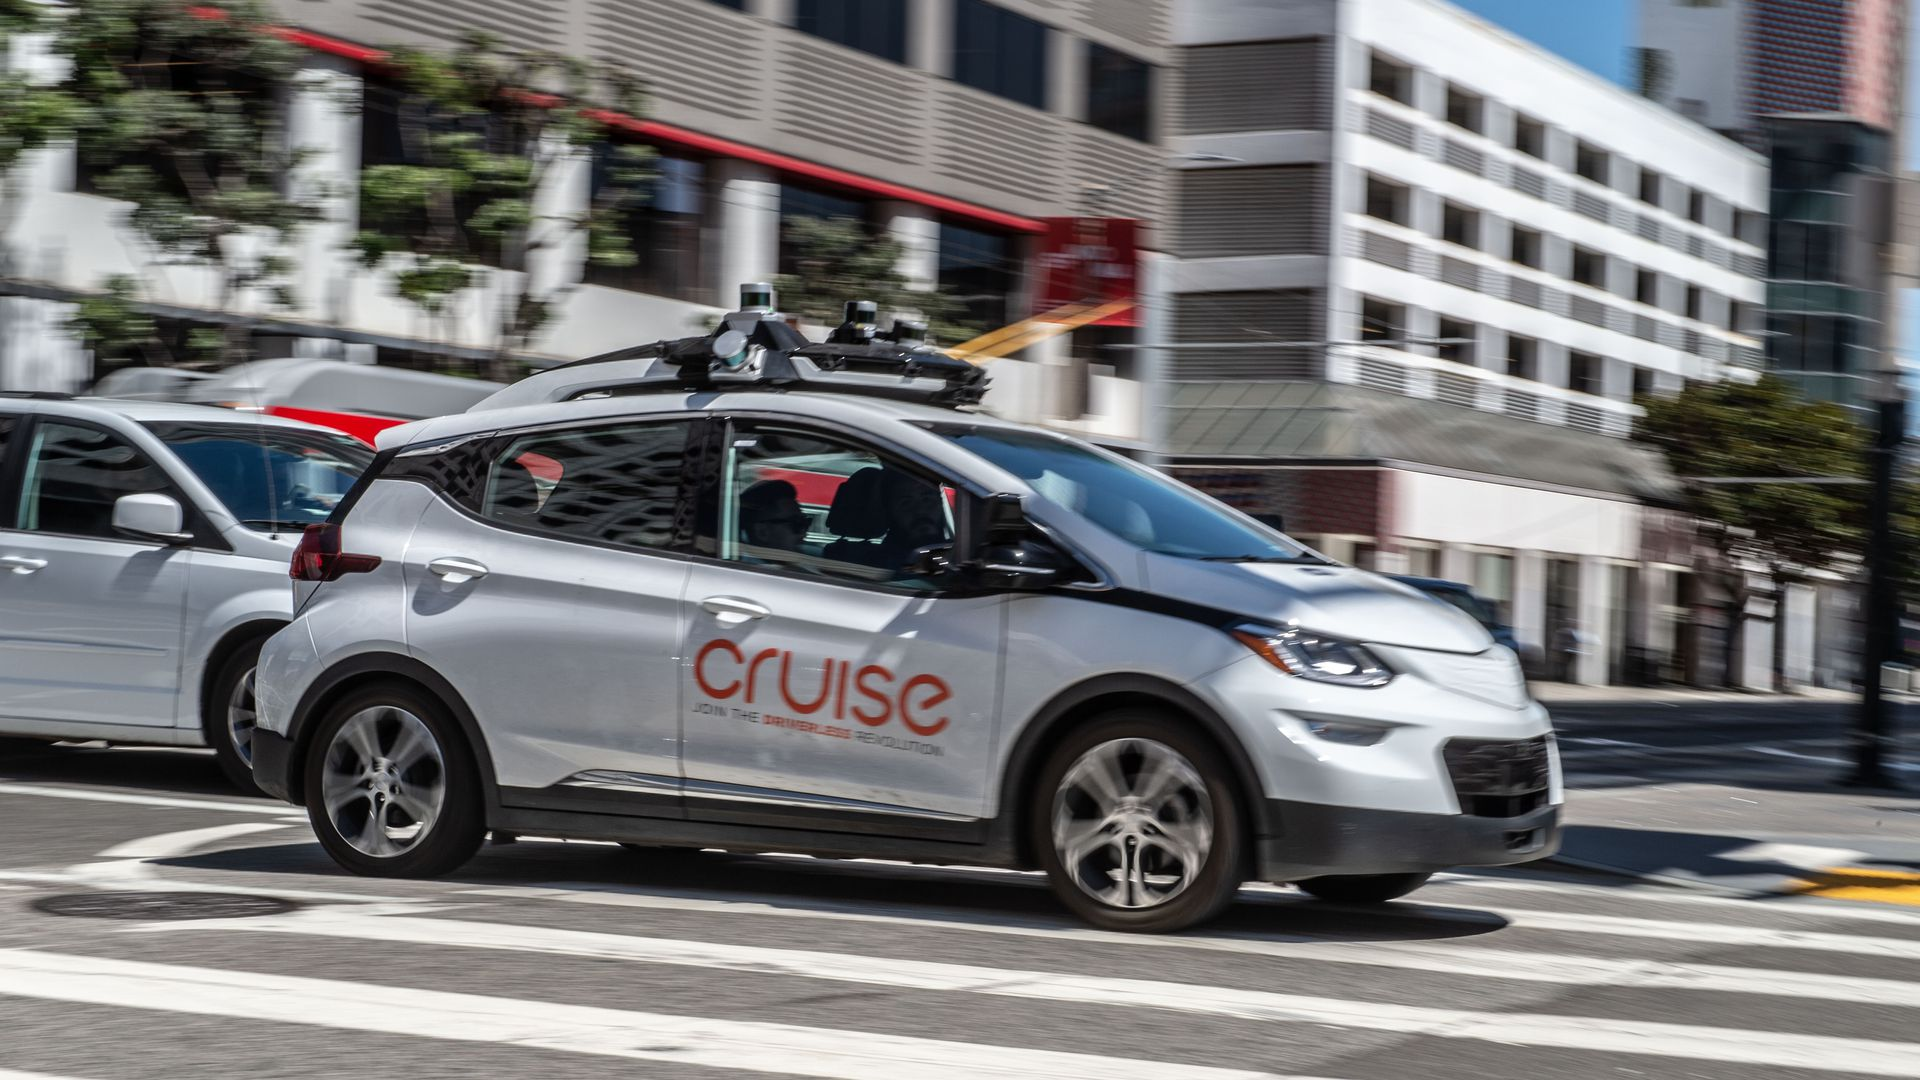 GM Cruise test self-driving vehicle driving through an intersection